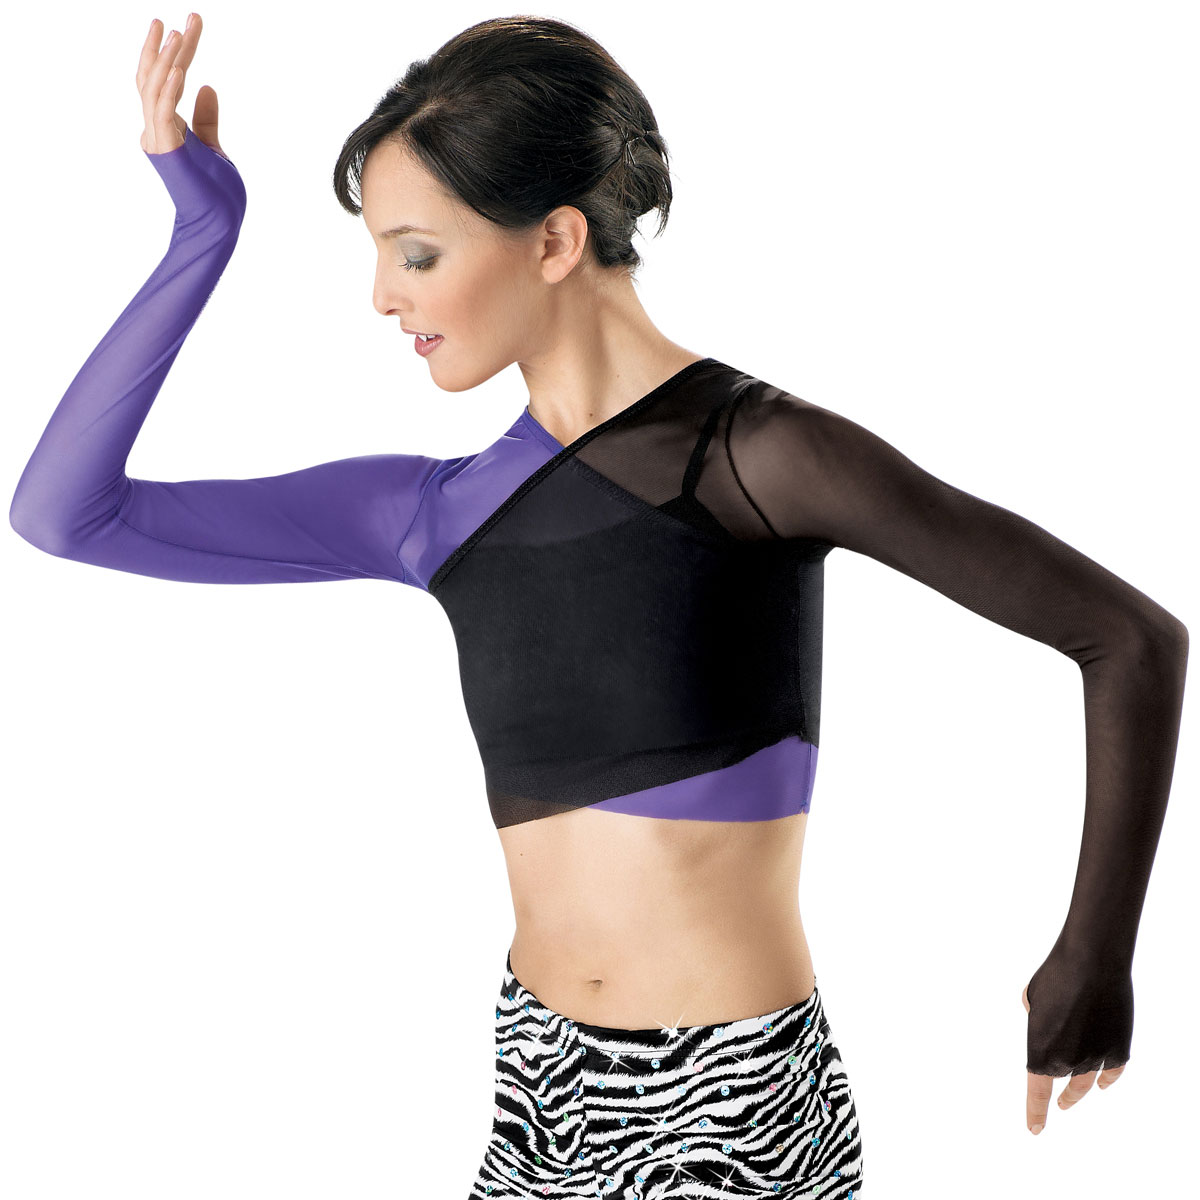 Workout Tops: The Mind Body Moderate